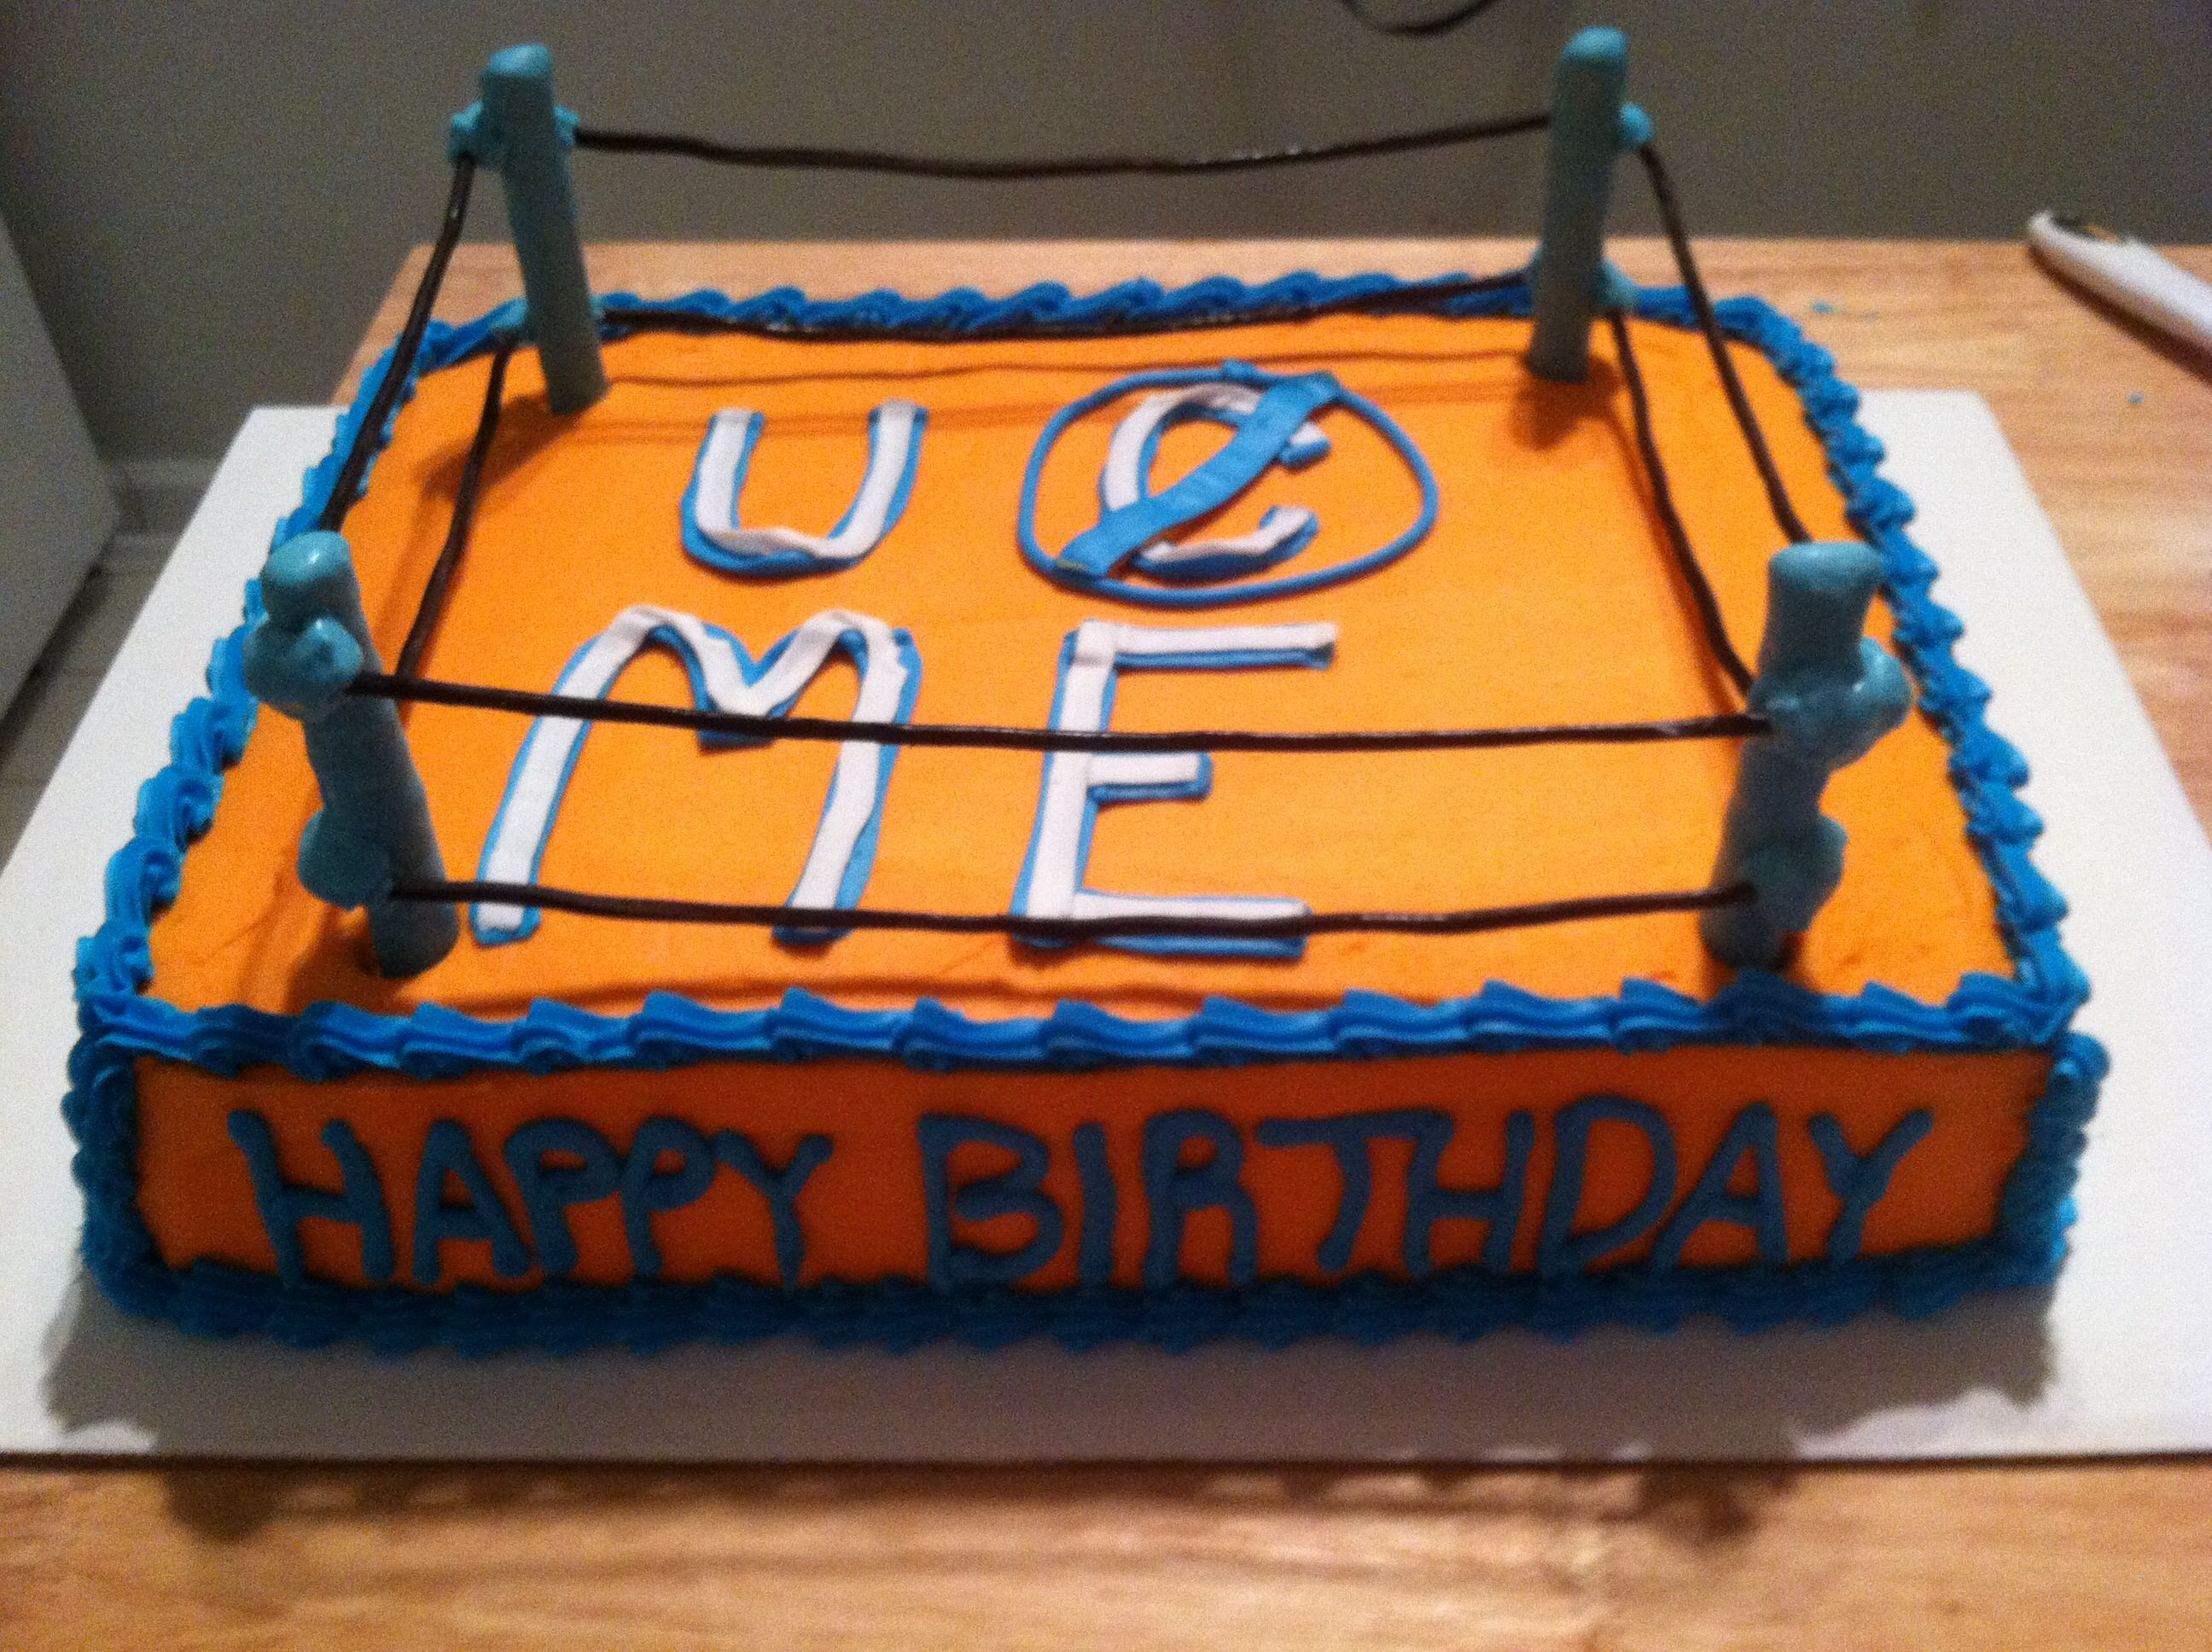 Sensational John Cena Cake Just For Him Happy Birthday In April 23 With Personalised Birthday Cards Paralily Jamesorg